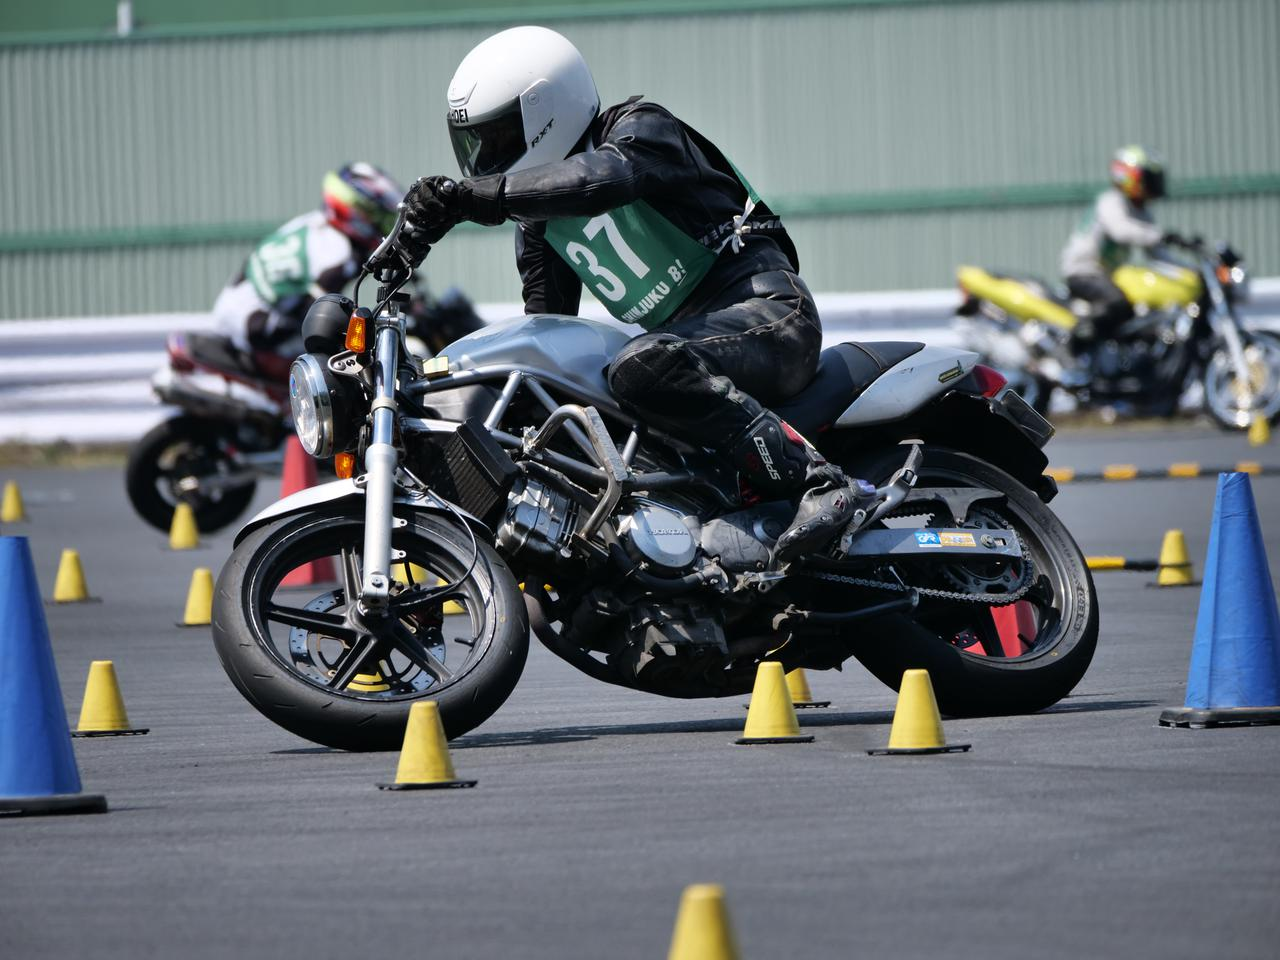 Images : 8番目の画像 - ジムカーナで活躍するホンダ「VTR」をもっと見る! - LAWRENCE - Motorcycle x Cars + α = Your Life.